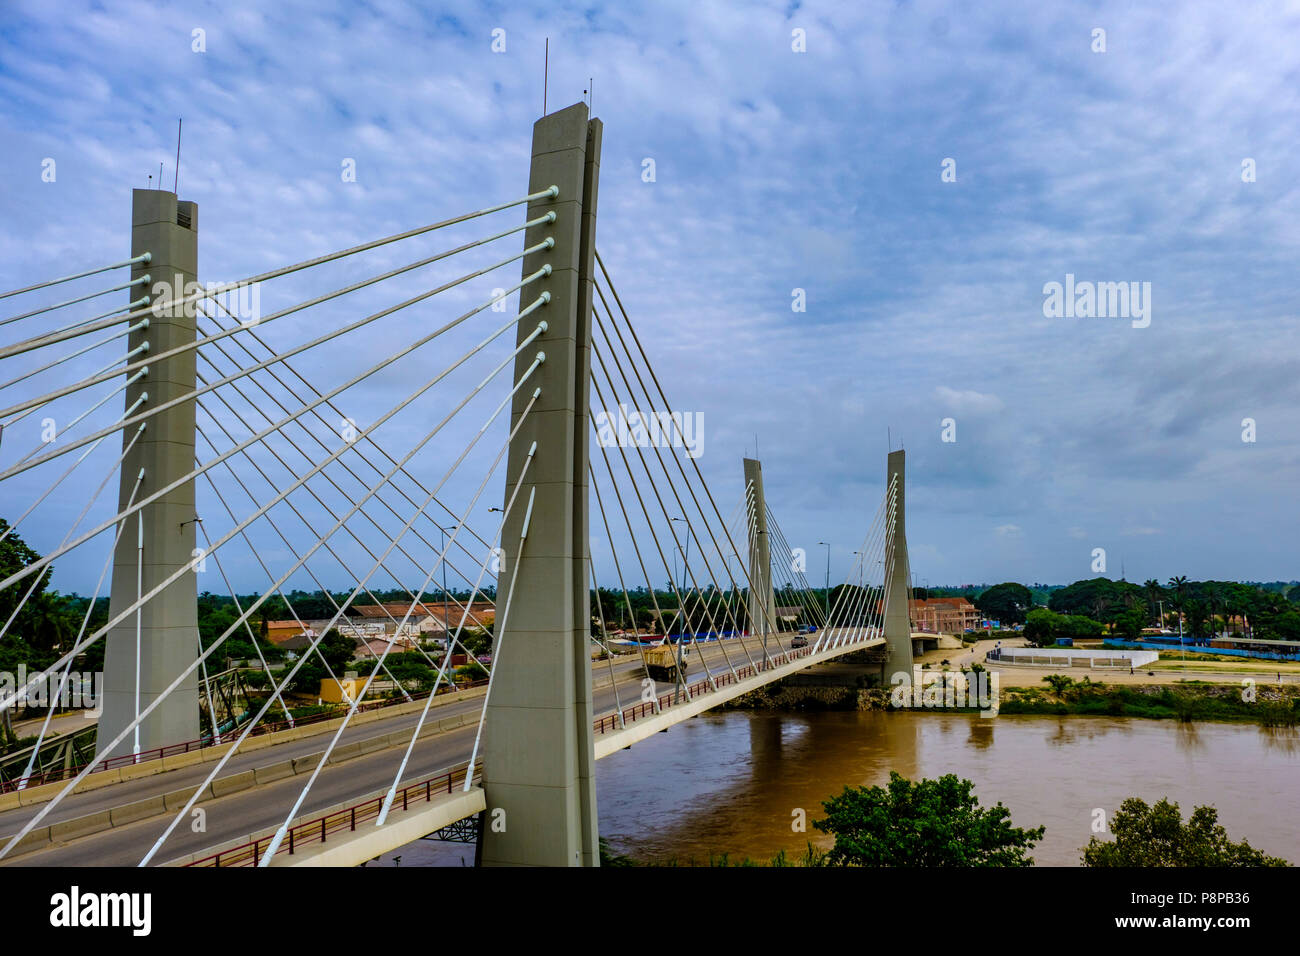 Traffic crosses modern suspension Bridge, 4 April, over Catumbela River linking cities of Benguela and Lobito in Angola - Stock Image